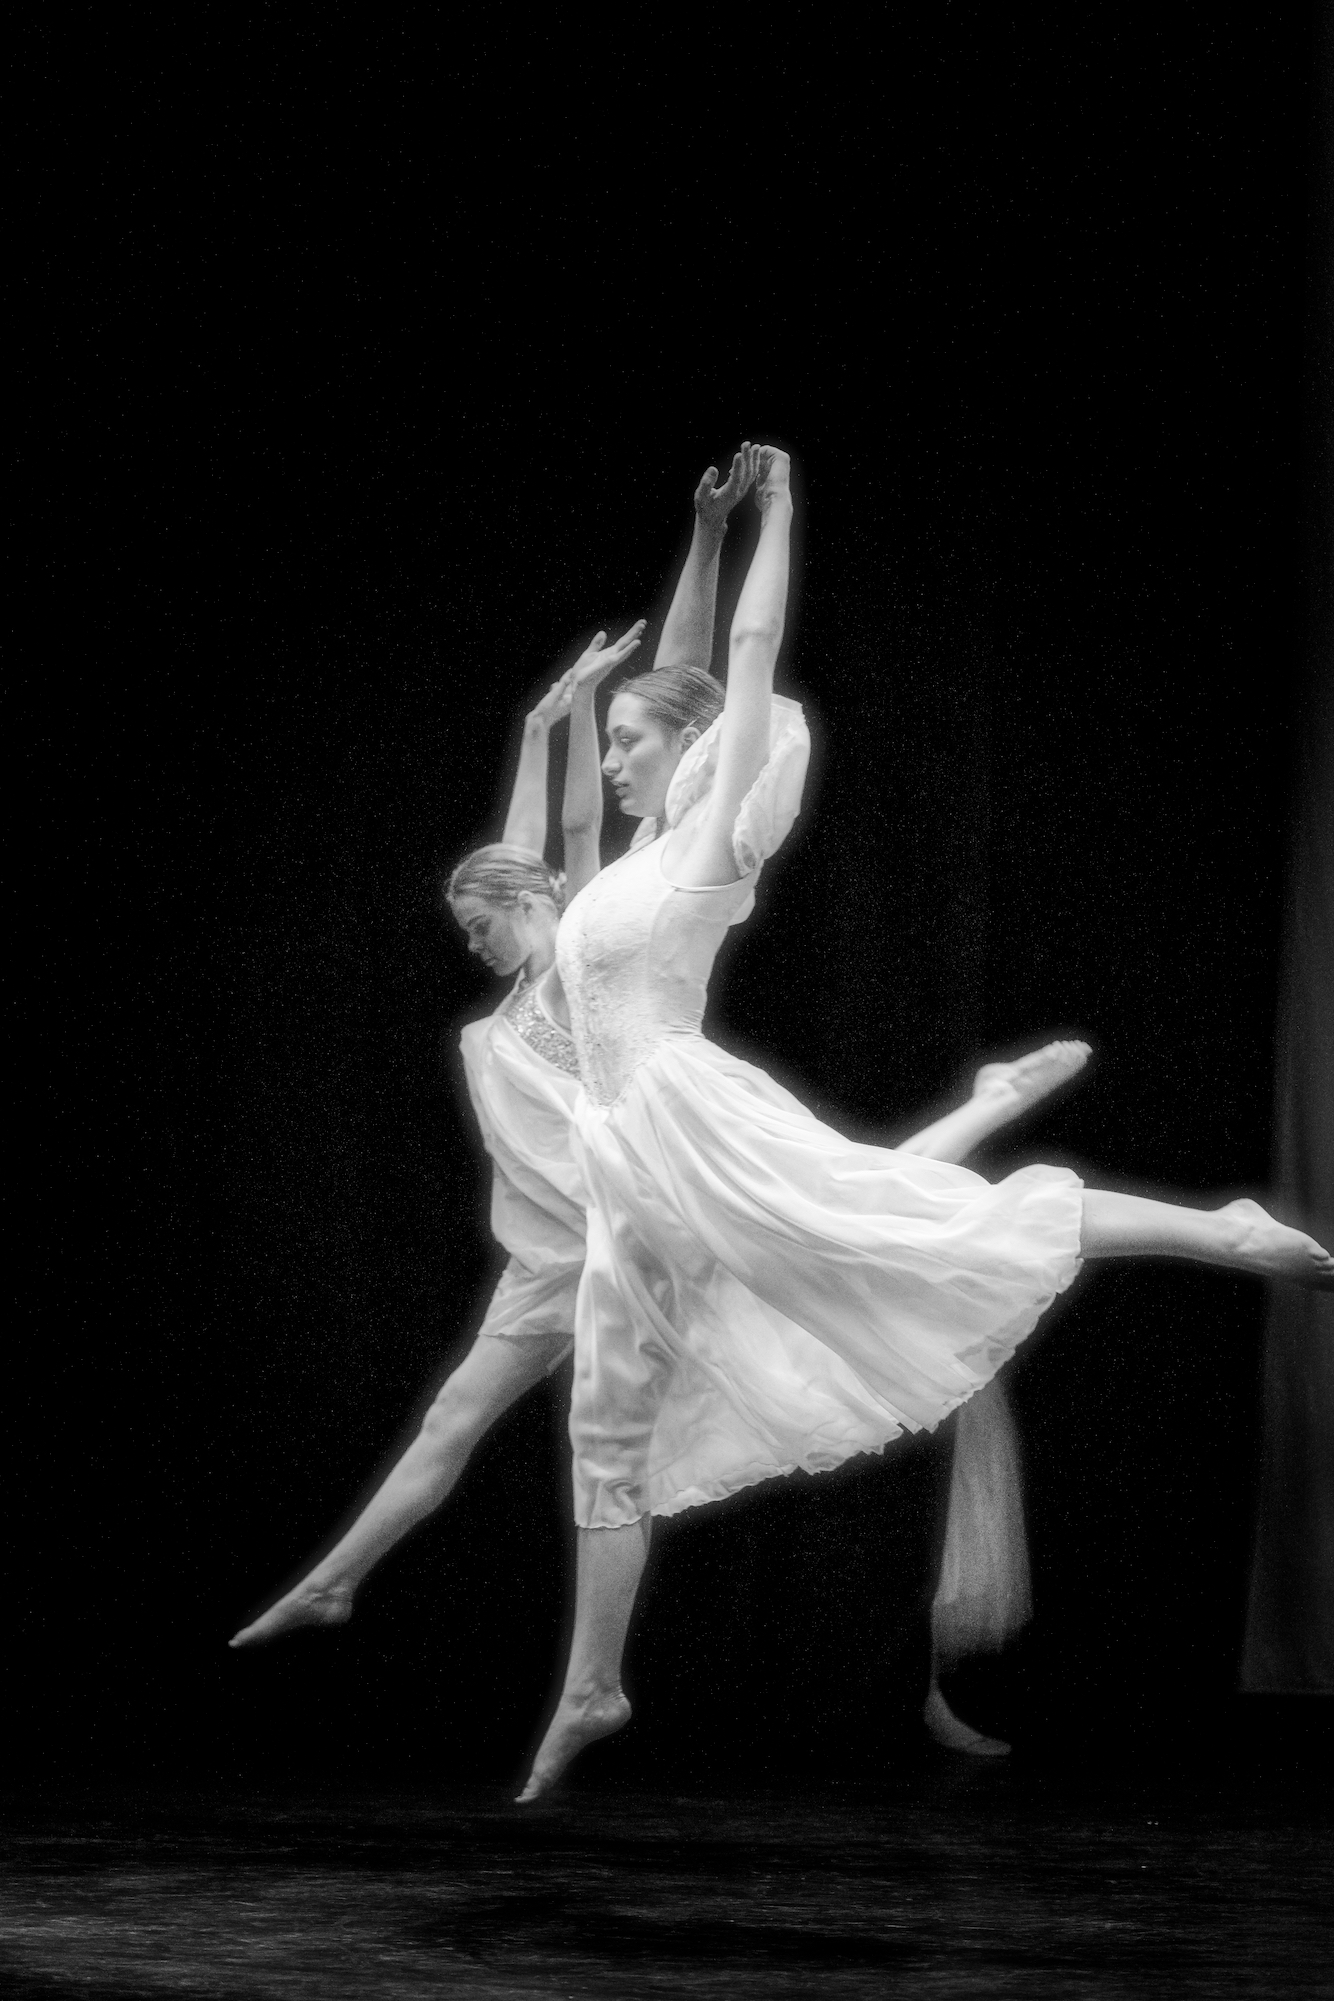 Action dance photography